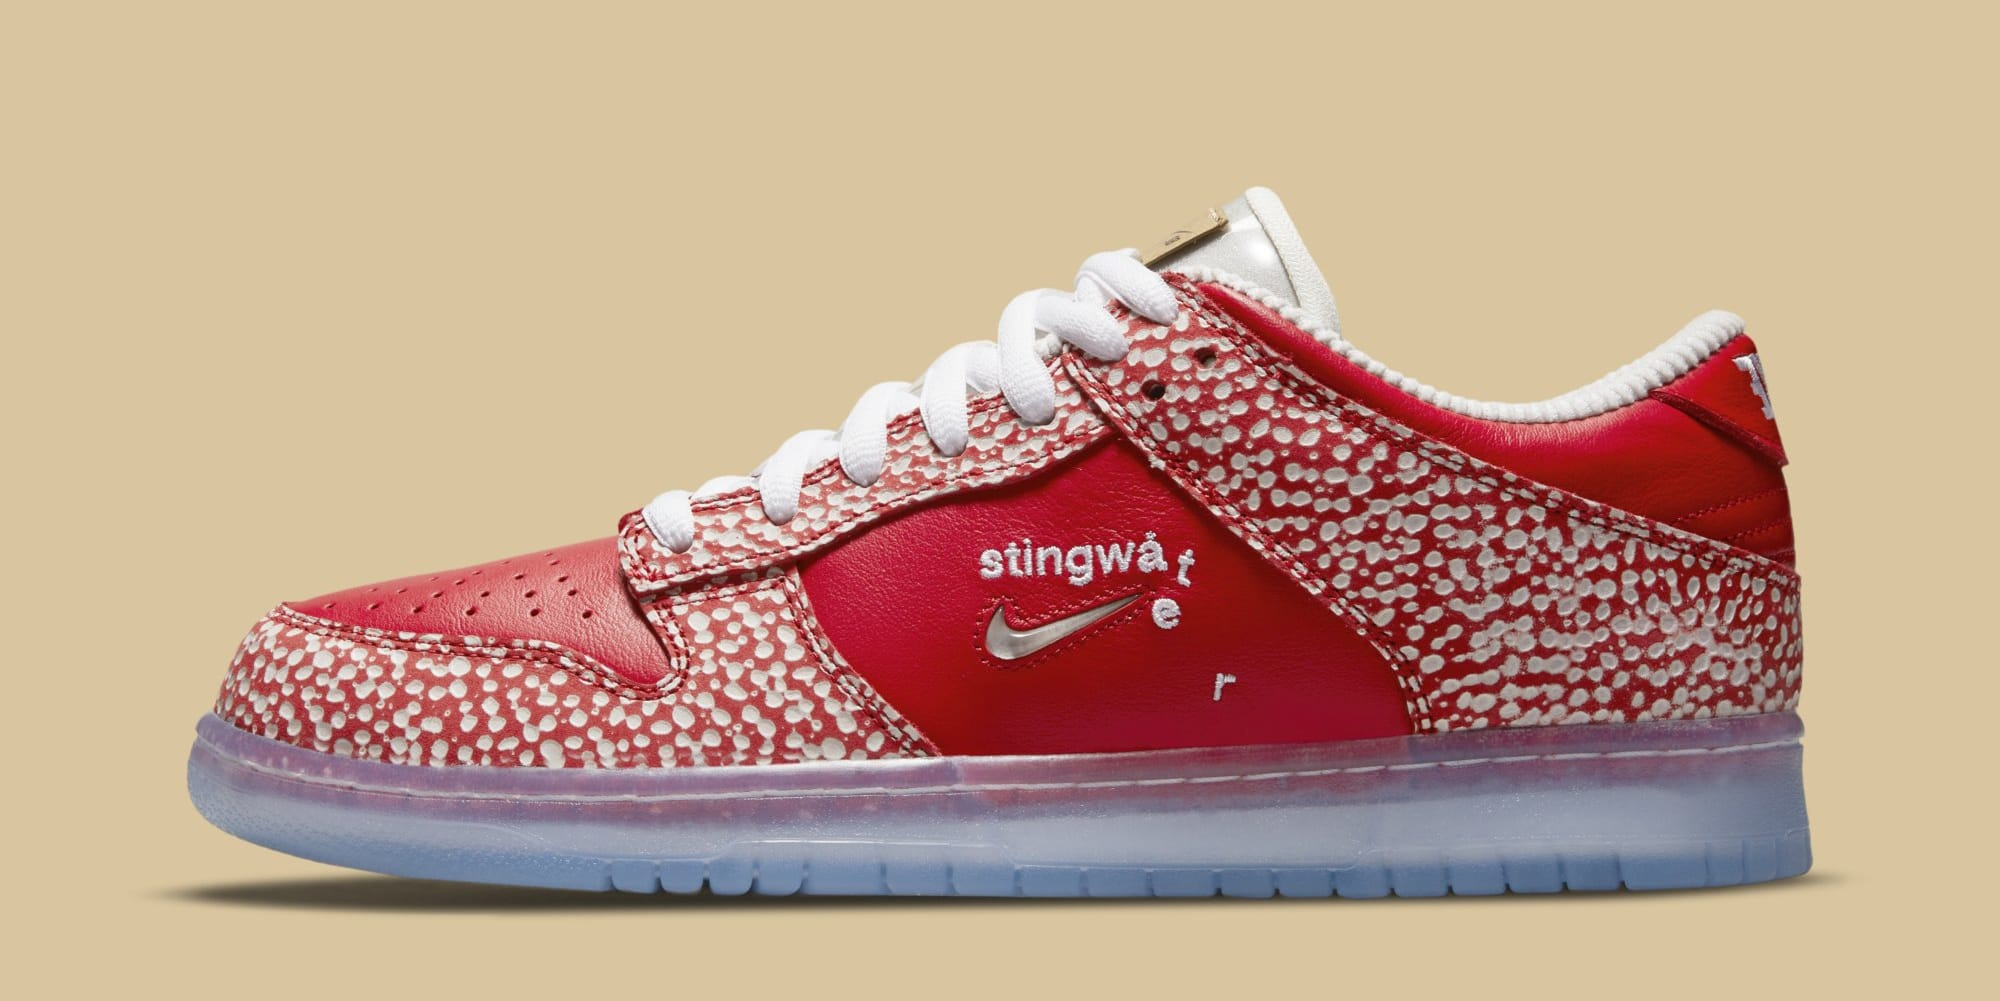 Stingwater x Nike SB Dunk Low DH7650-600 (Lateral)